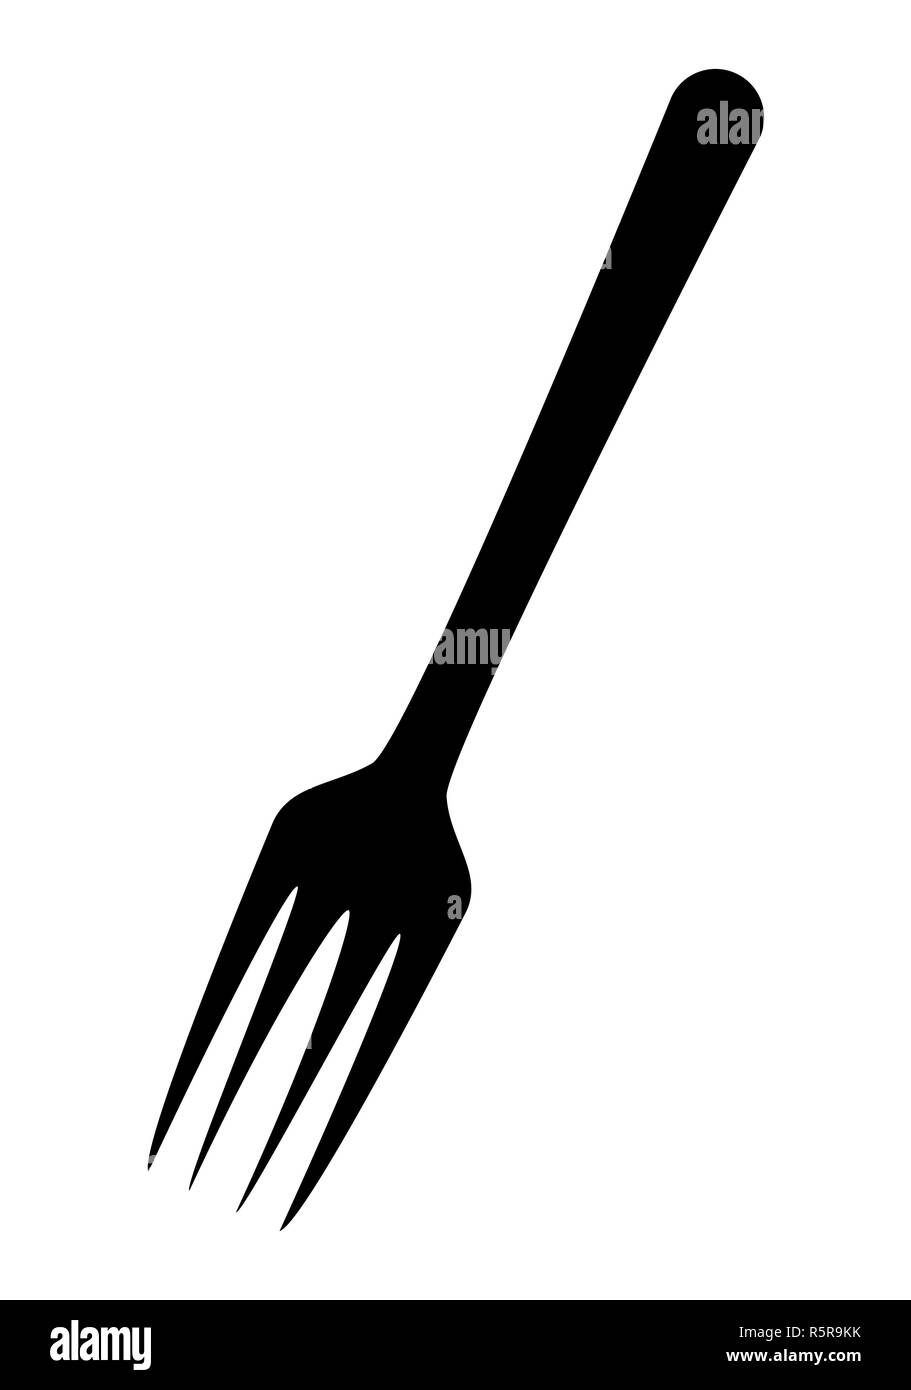 kitchen fork vector symbol icon design. - Stock Image